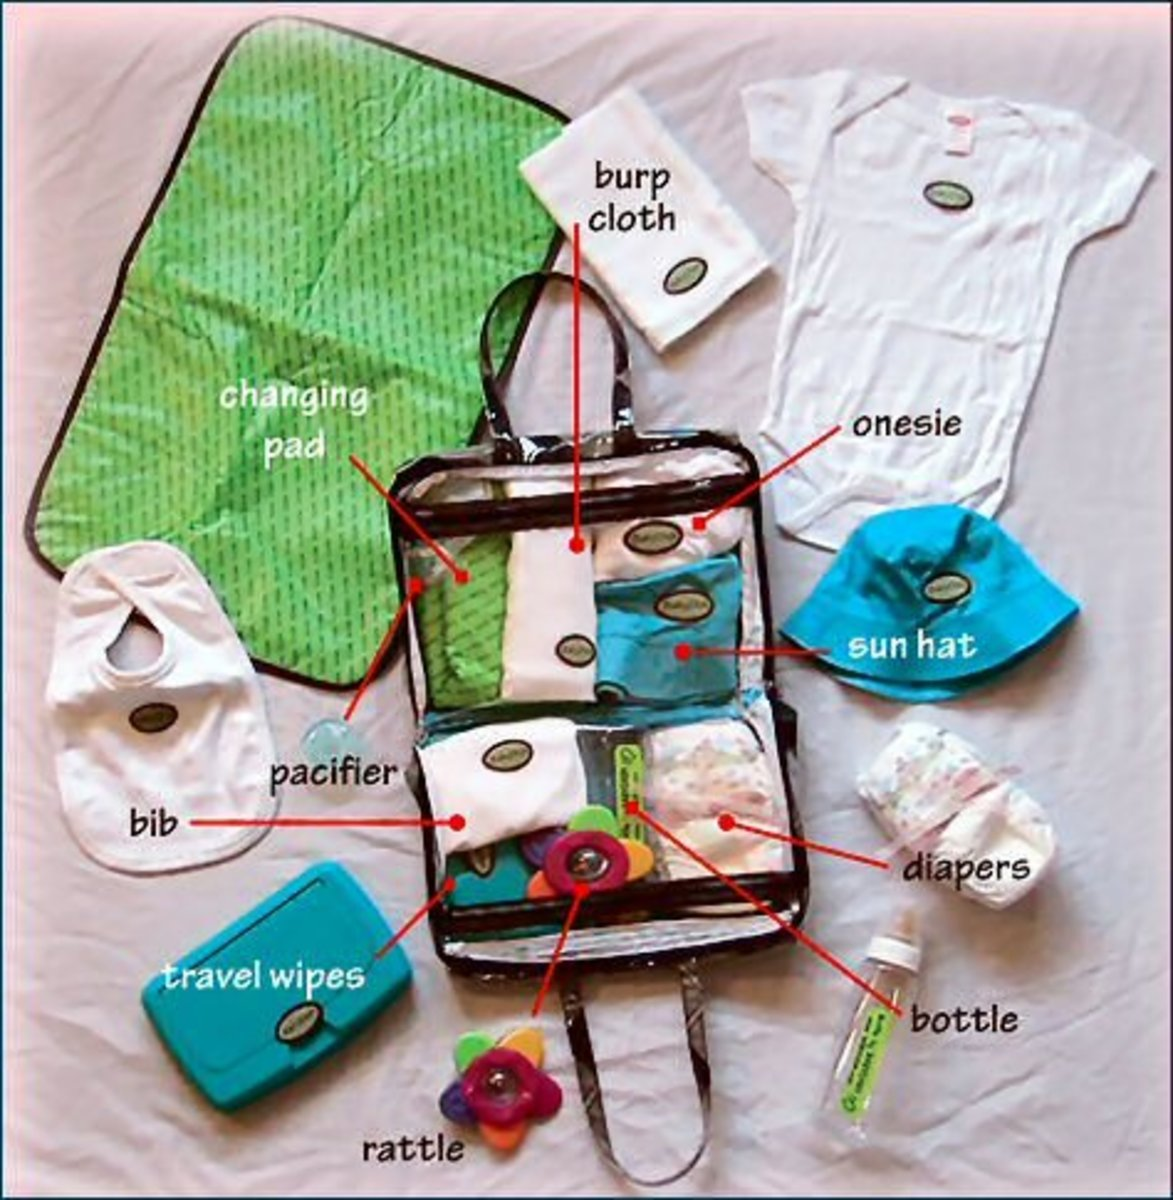 Pregnancy Checklist - What to pack for the Hospital for Labor and Delivery